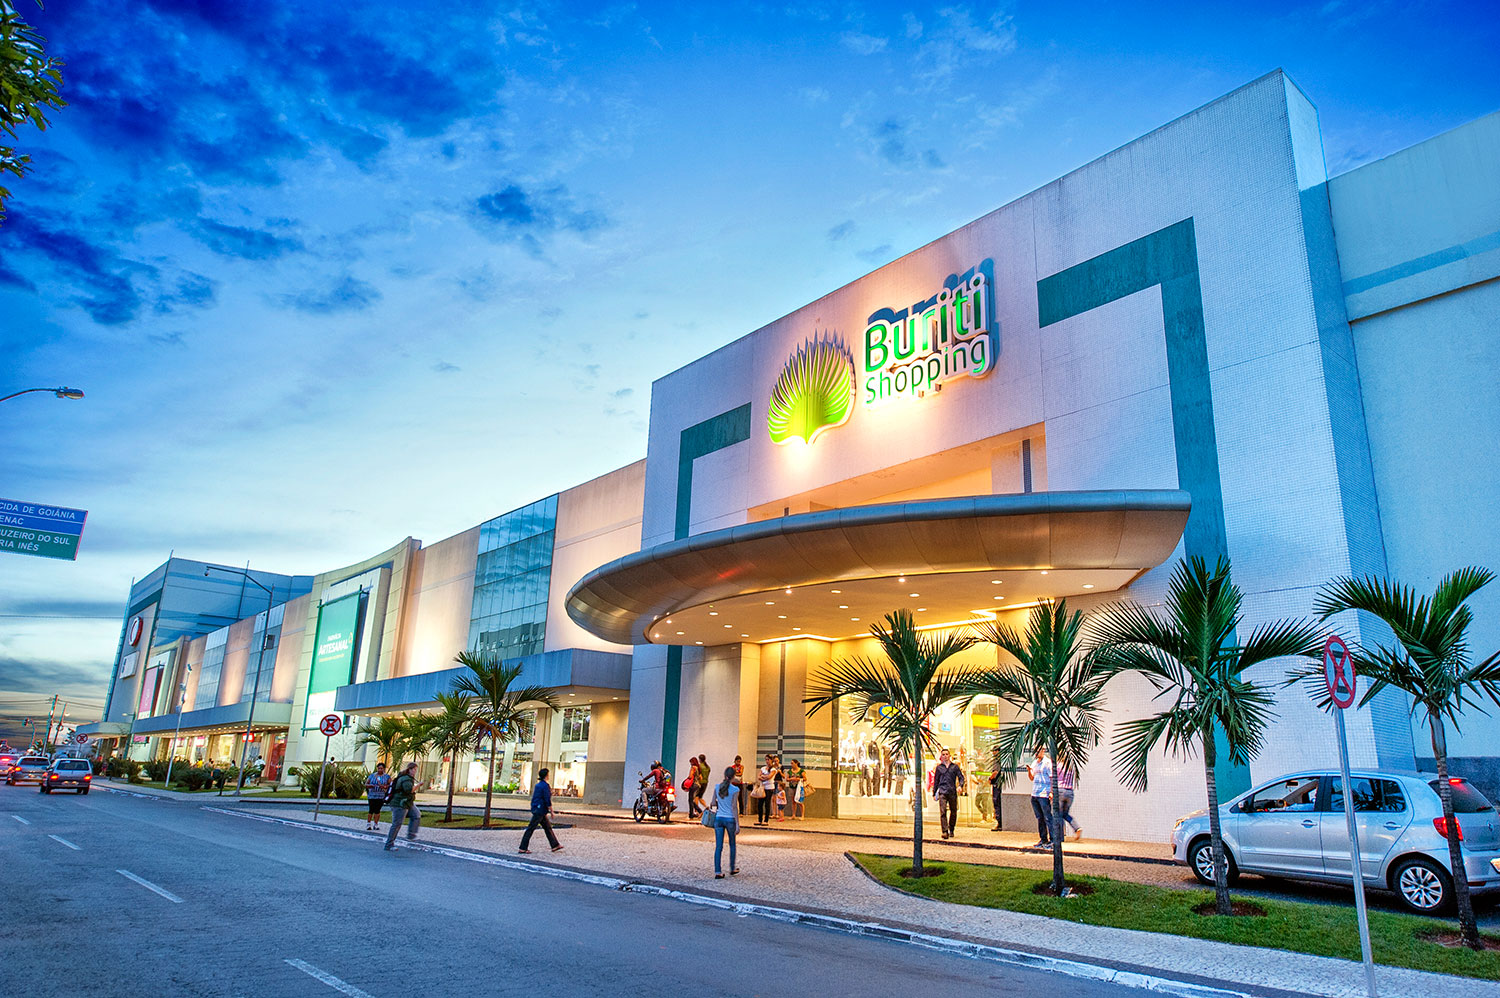 8fbd17997db Aparecida  joalheria Vizzardi do Buriti Shopping é assaltada